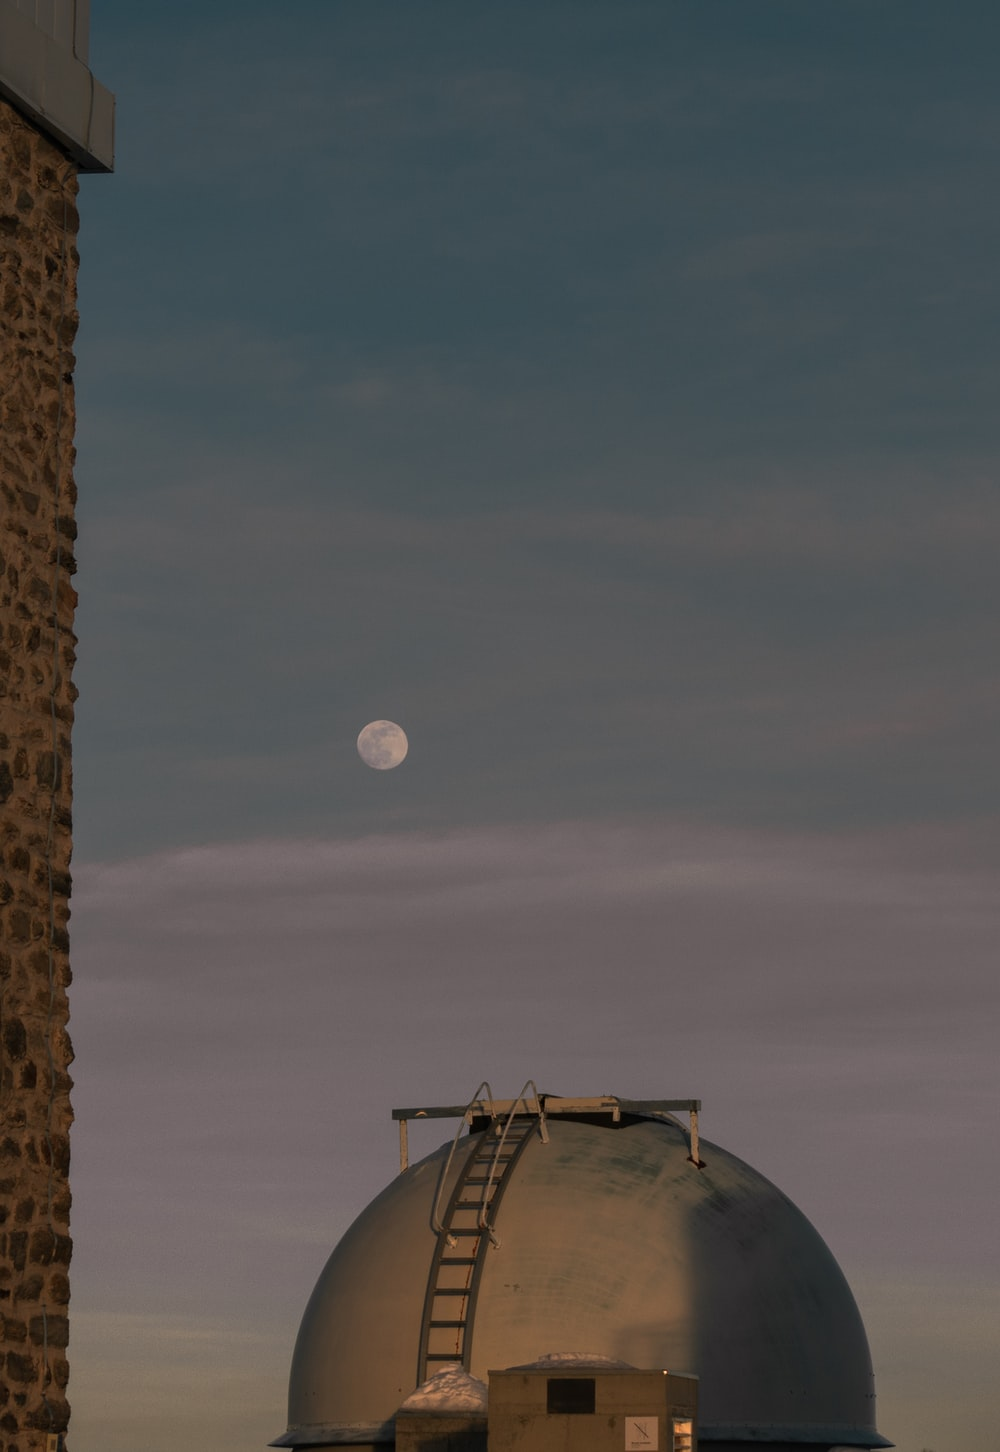 full moon over brown concrete building